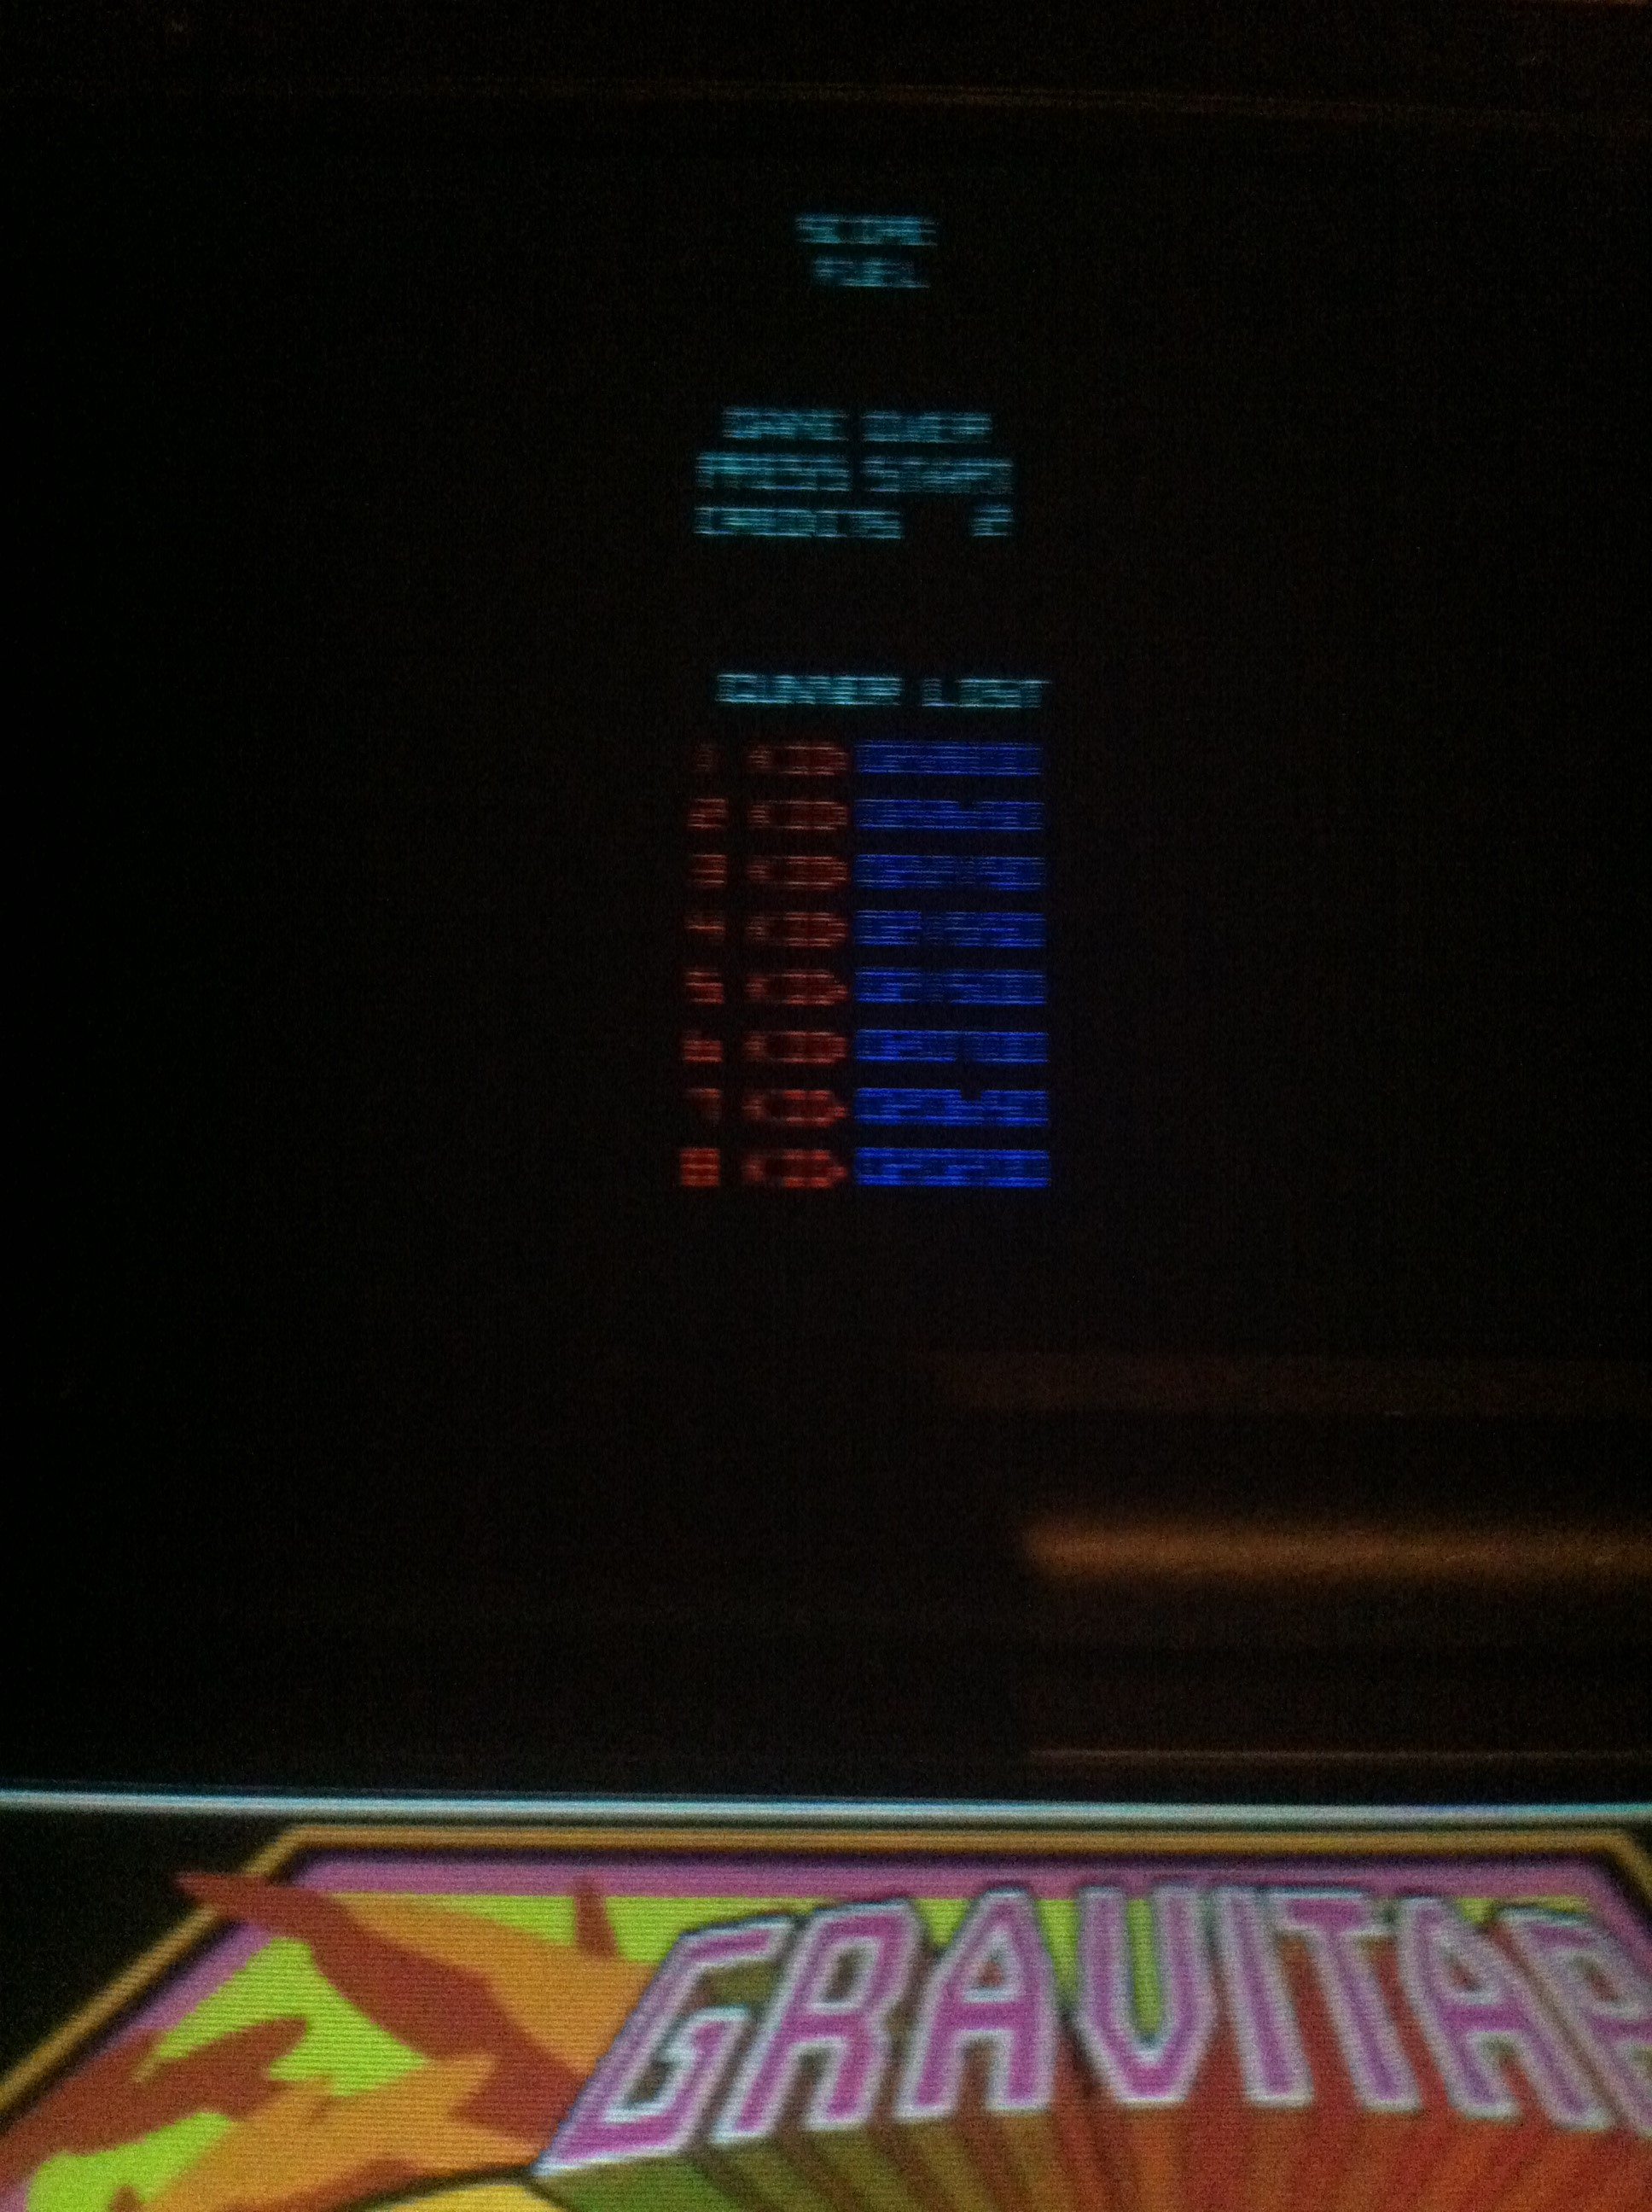 DakotaKid: Atari Greatest Hits: Volume 1: Gravitar [Arcade] (Nintendo DS) 20,200 points on 2017-09-13 19:37:42